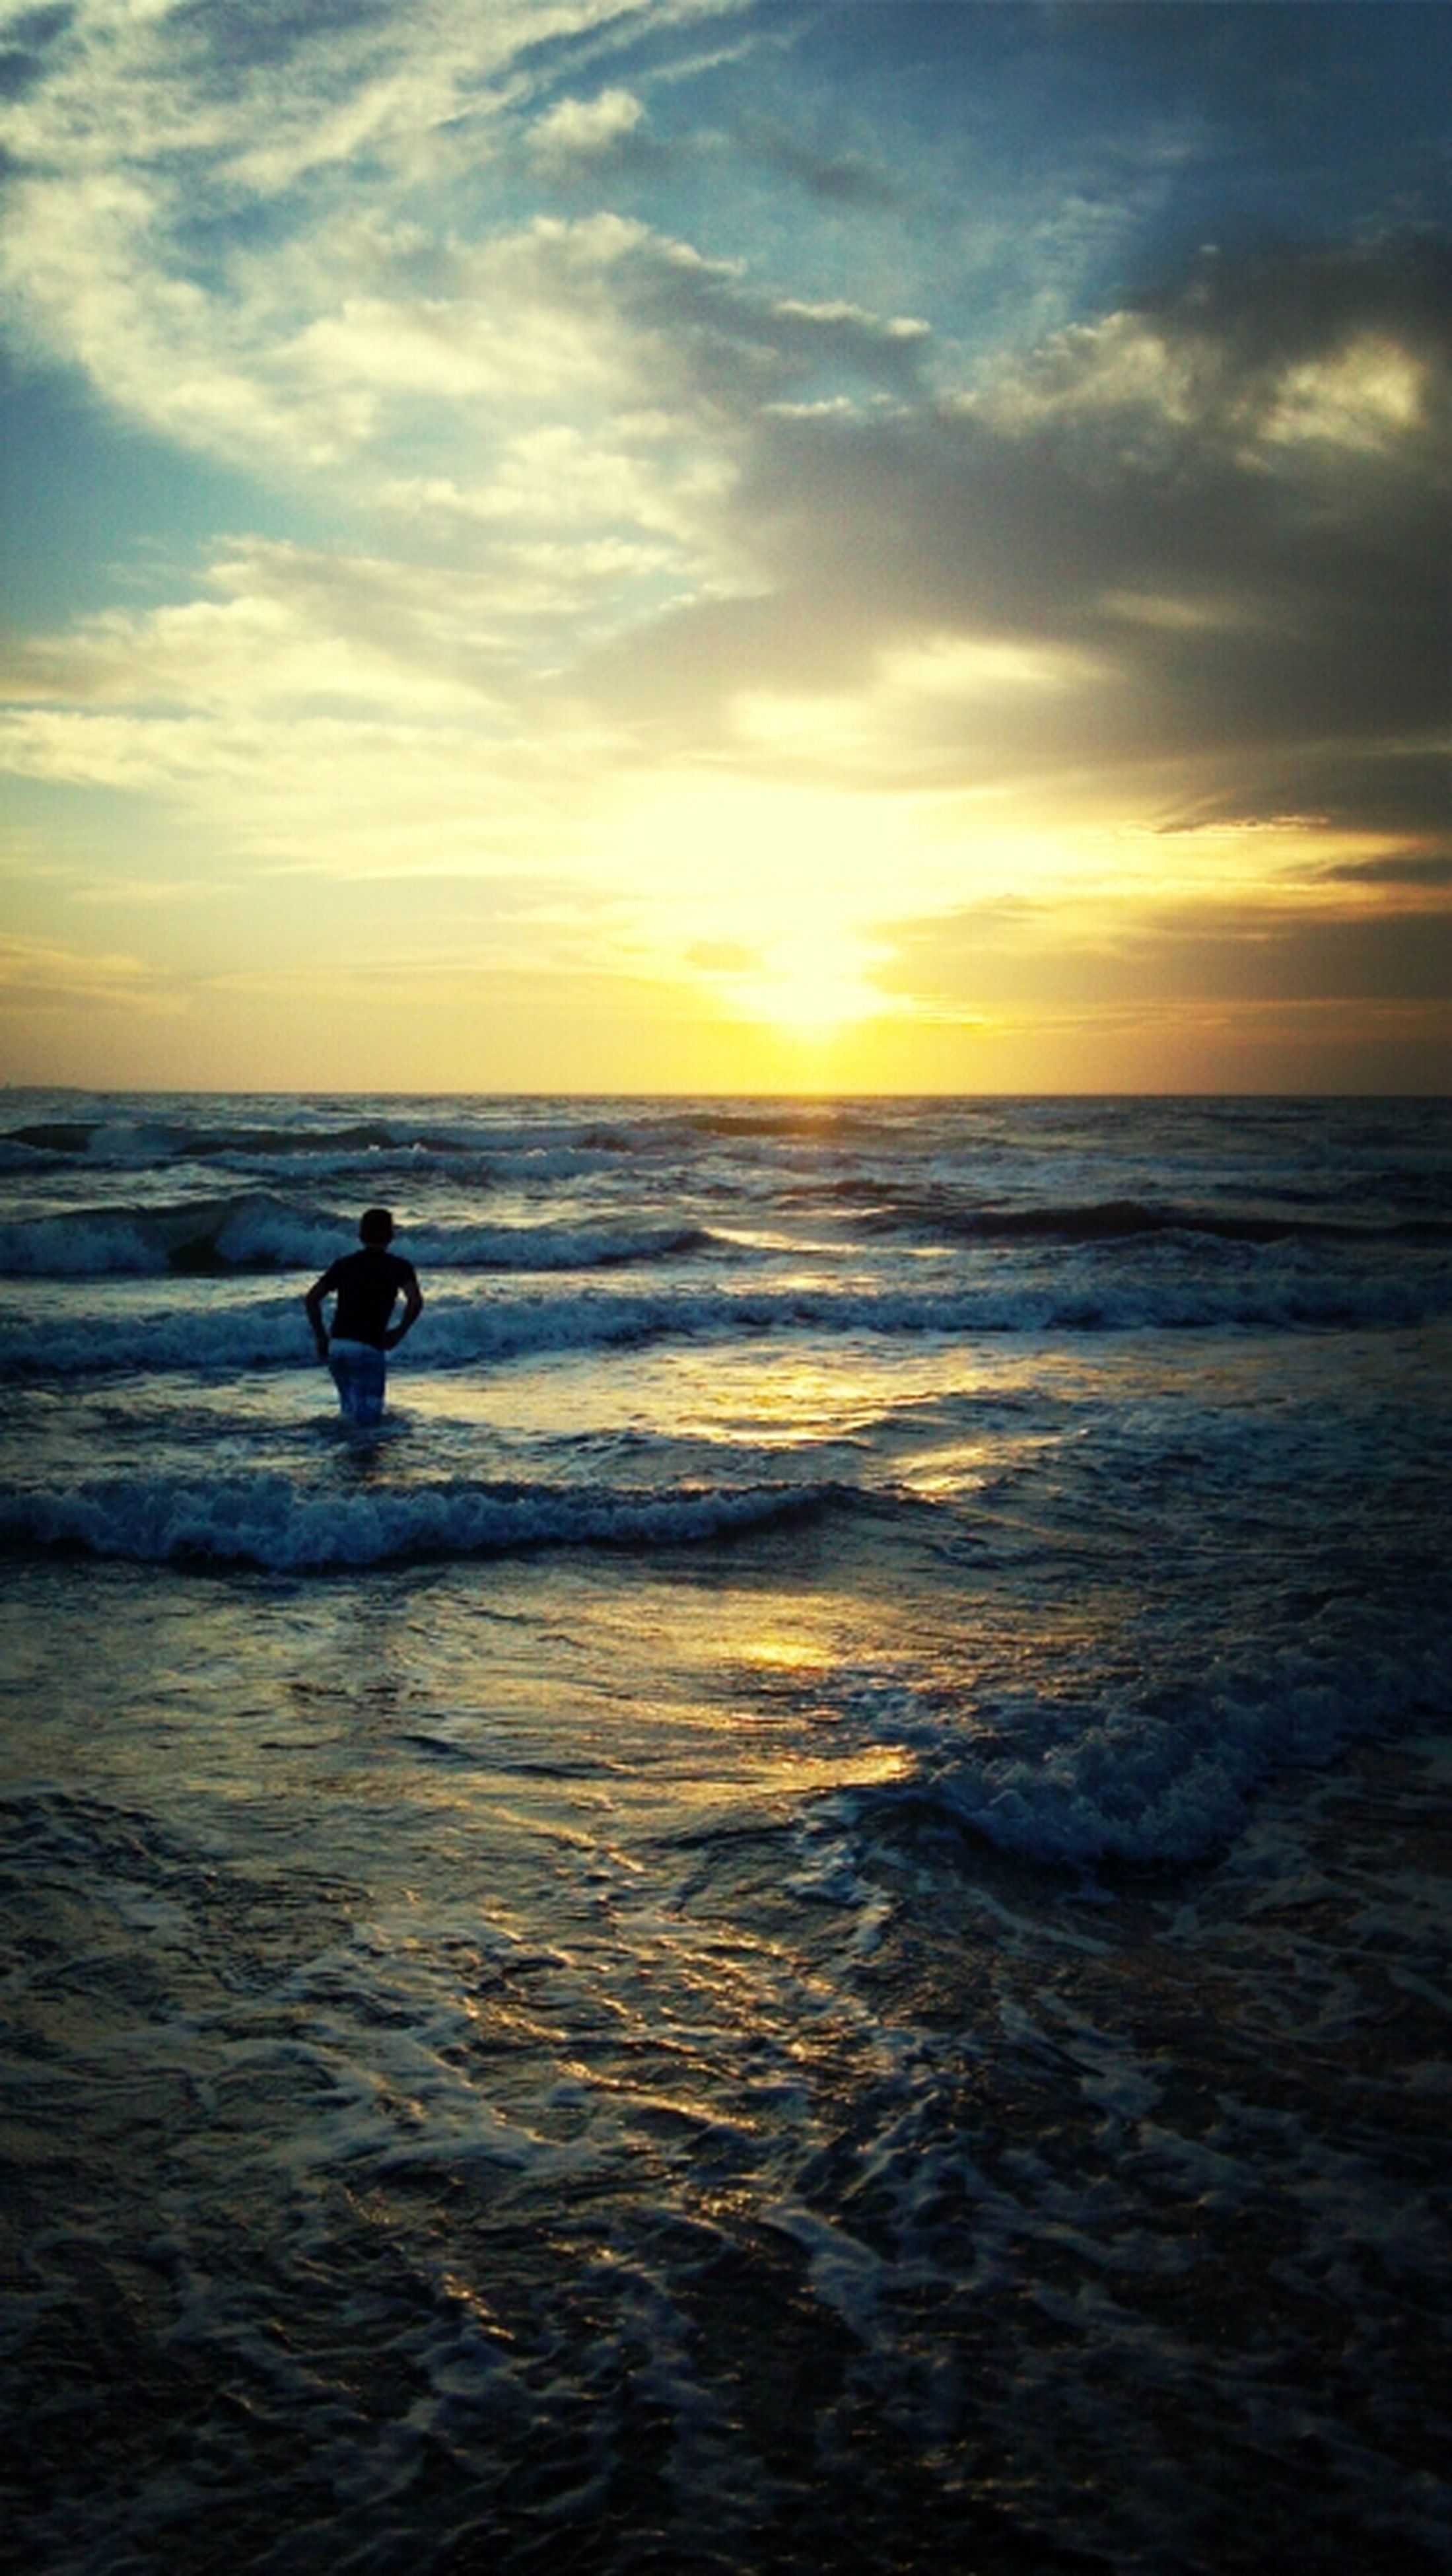 sunset, sea, water, horizon over water, sky, silhouette, scenics, beauty in nature, orange color, beach, wave, tranquil scene, leisure activity, lifestyles, men, tranquility, nature, idyllic